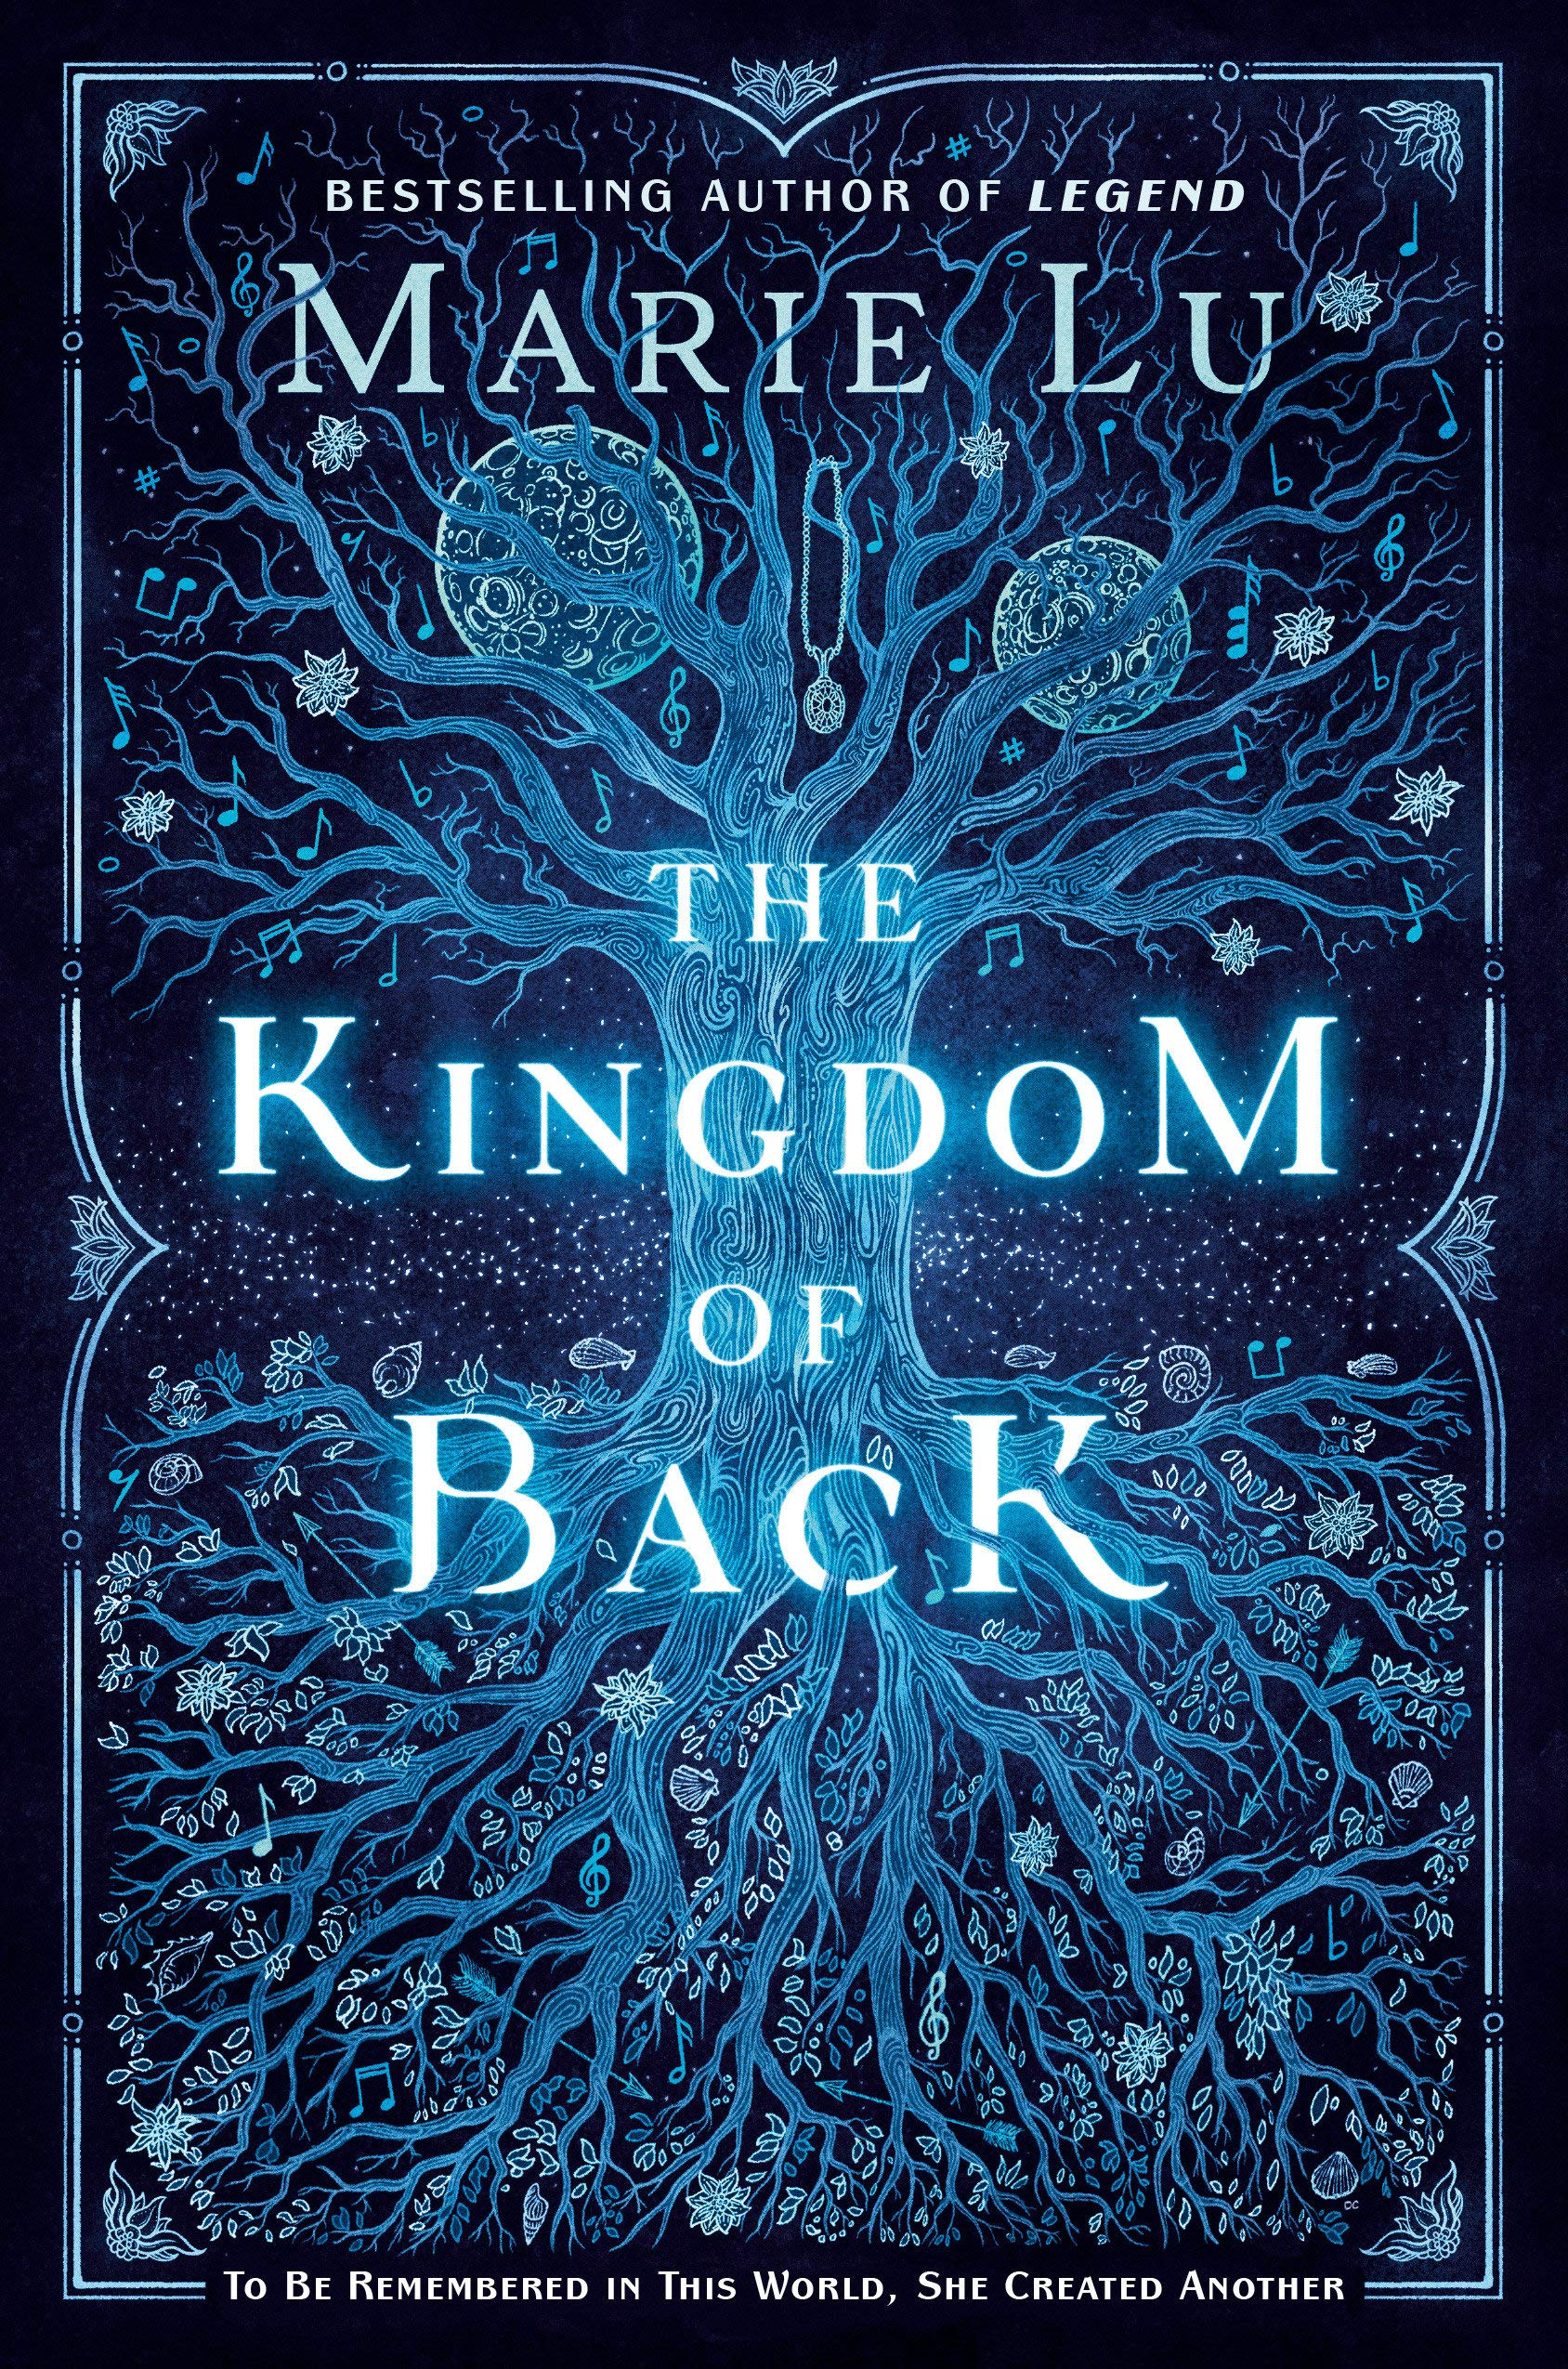 Image result for the kingdom of back by marie lu amazon""